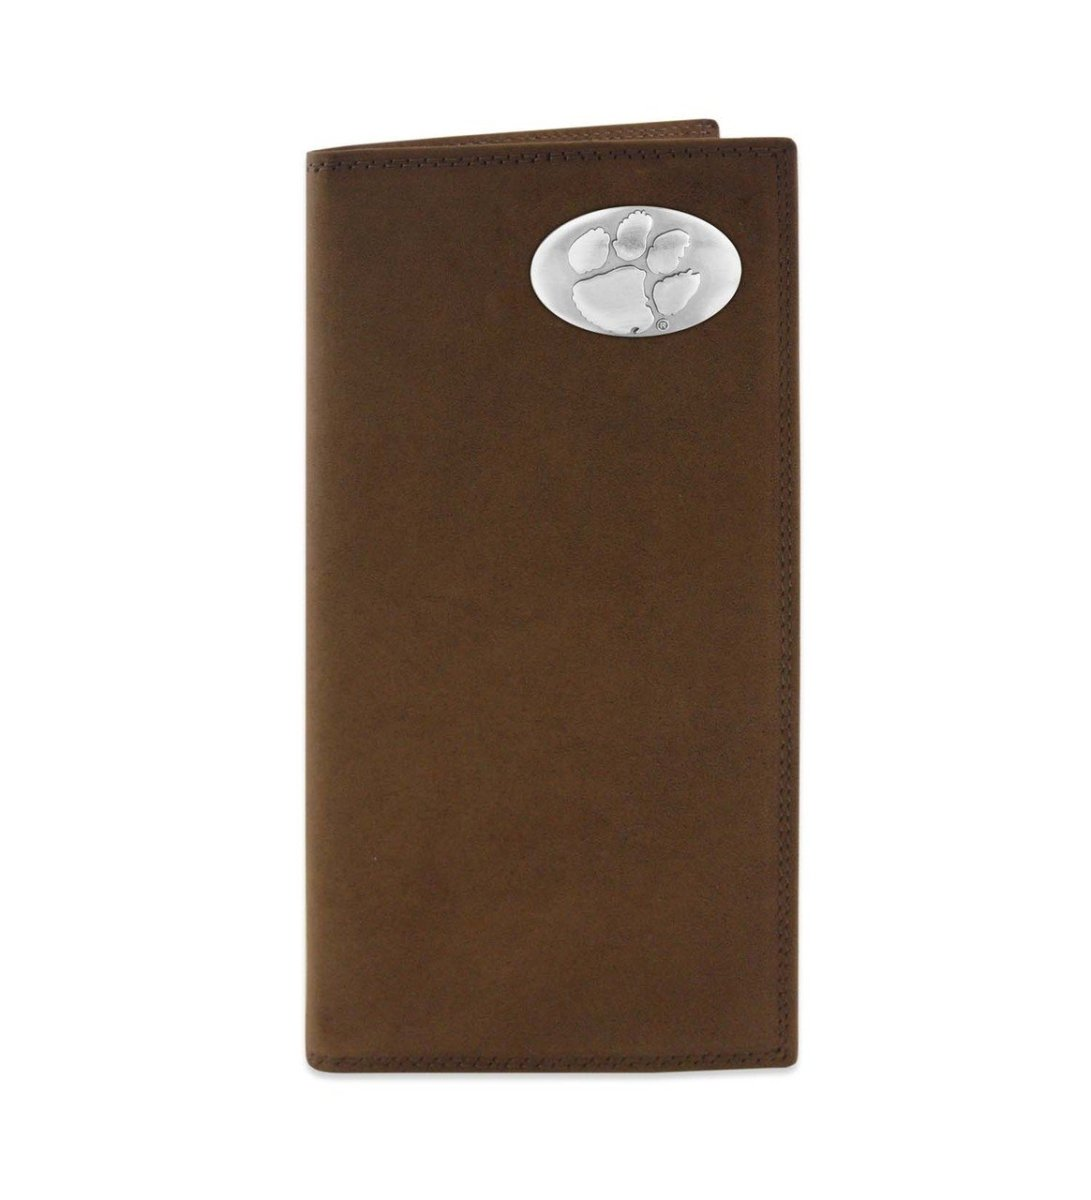 Crazy Horse Leather Pocket Secretary/checkbook Cover With Paw Concho - Mr. Knickerbocker